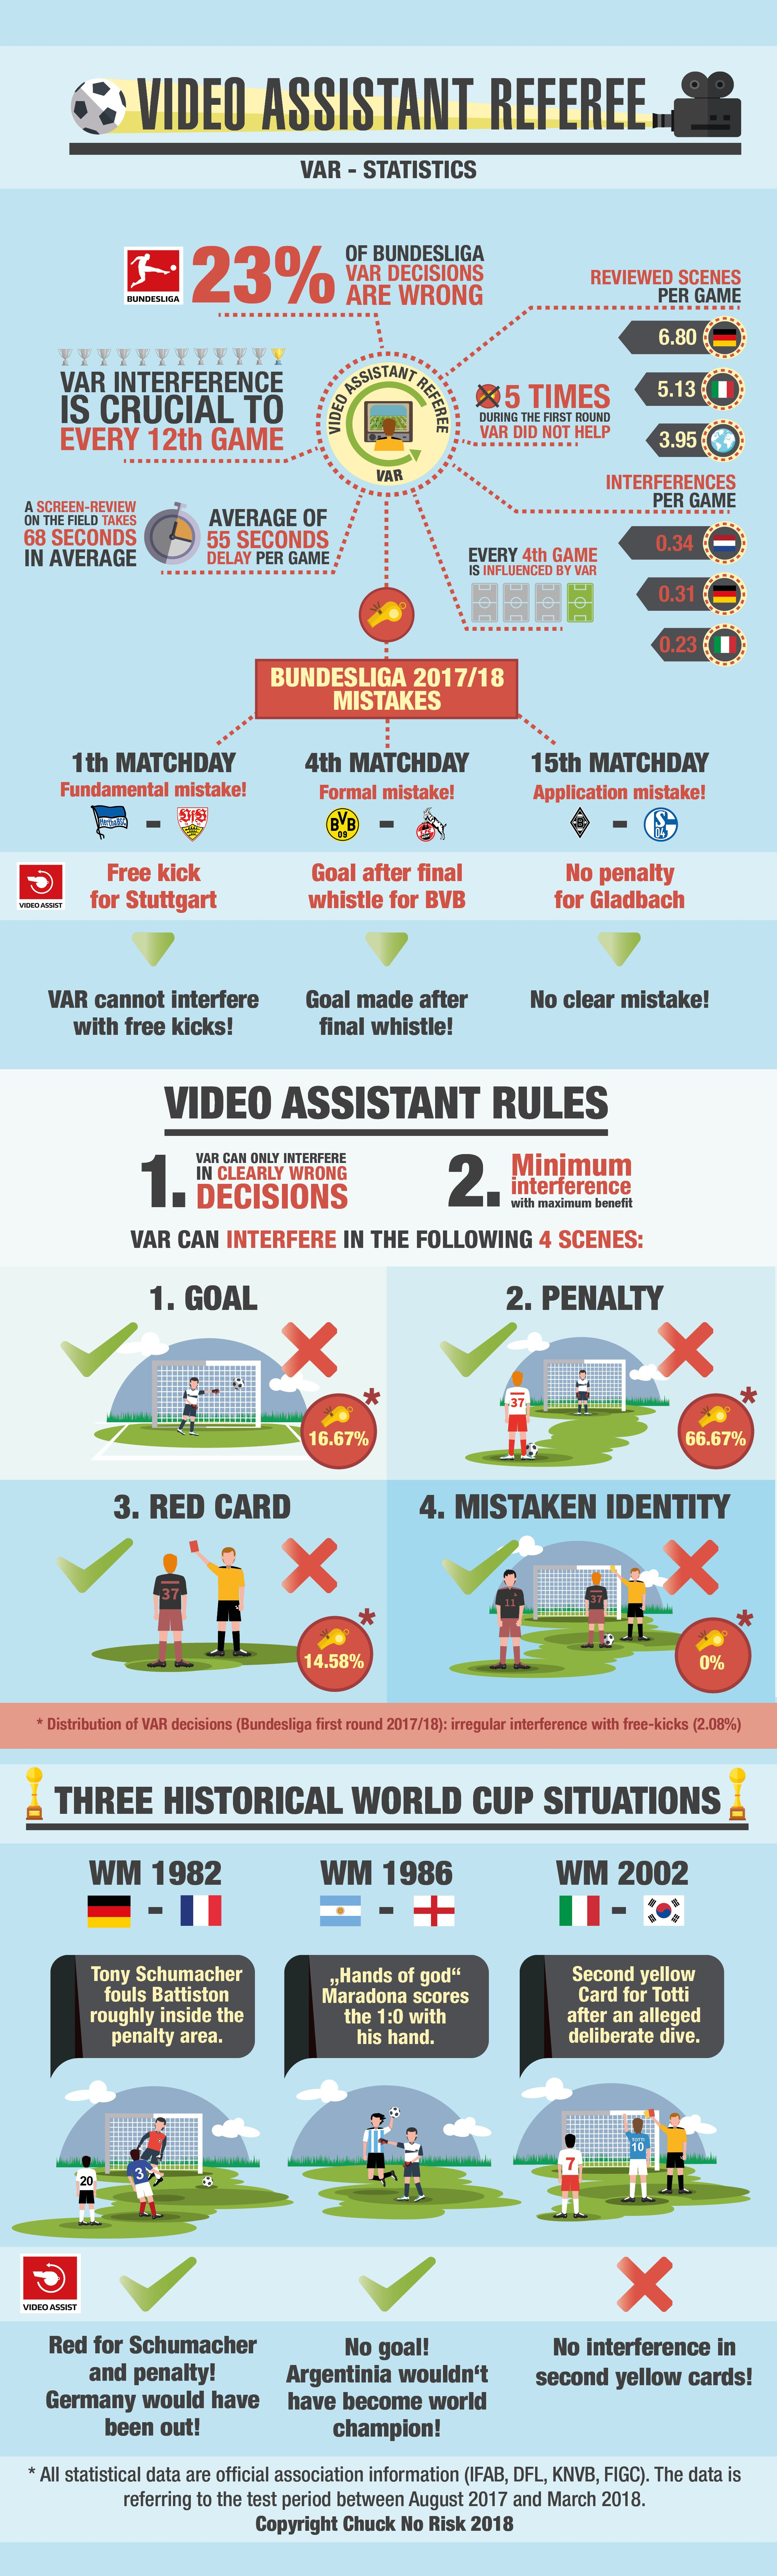 Video Assistant Referee at the World Cup 2018 - Stats and Resume